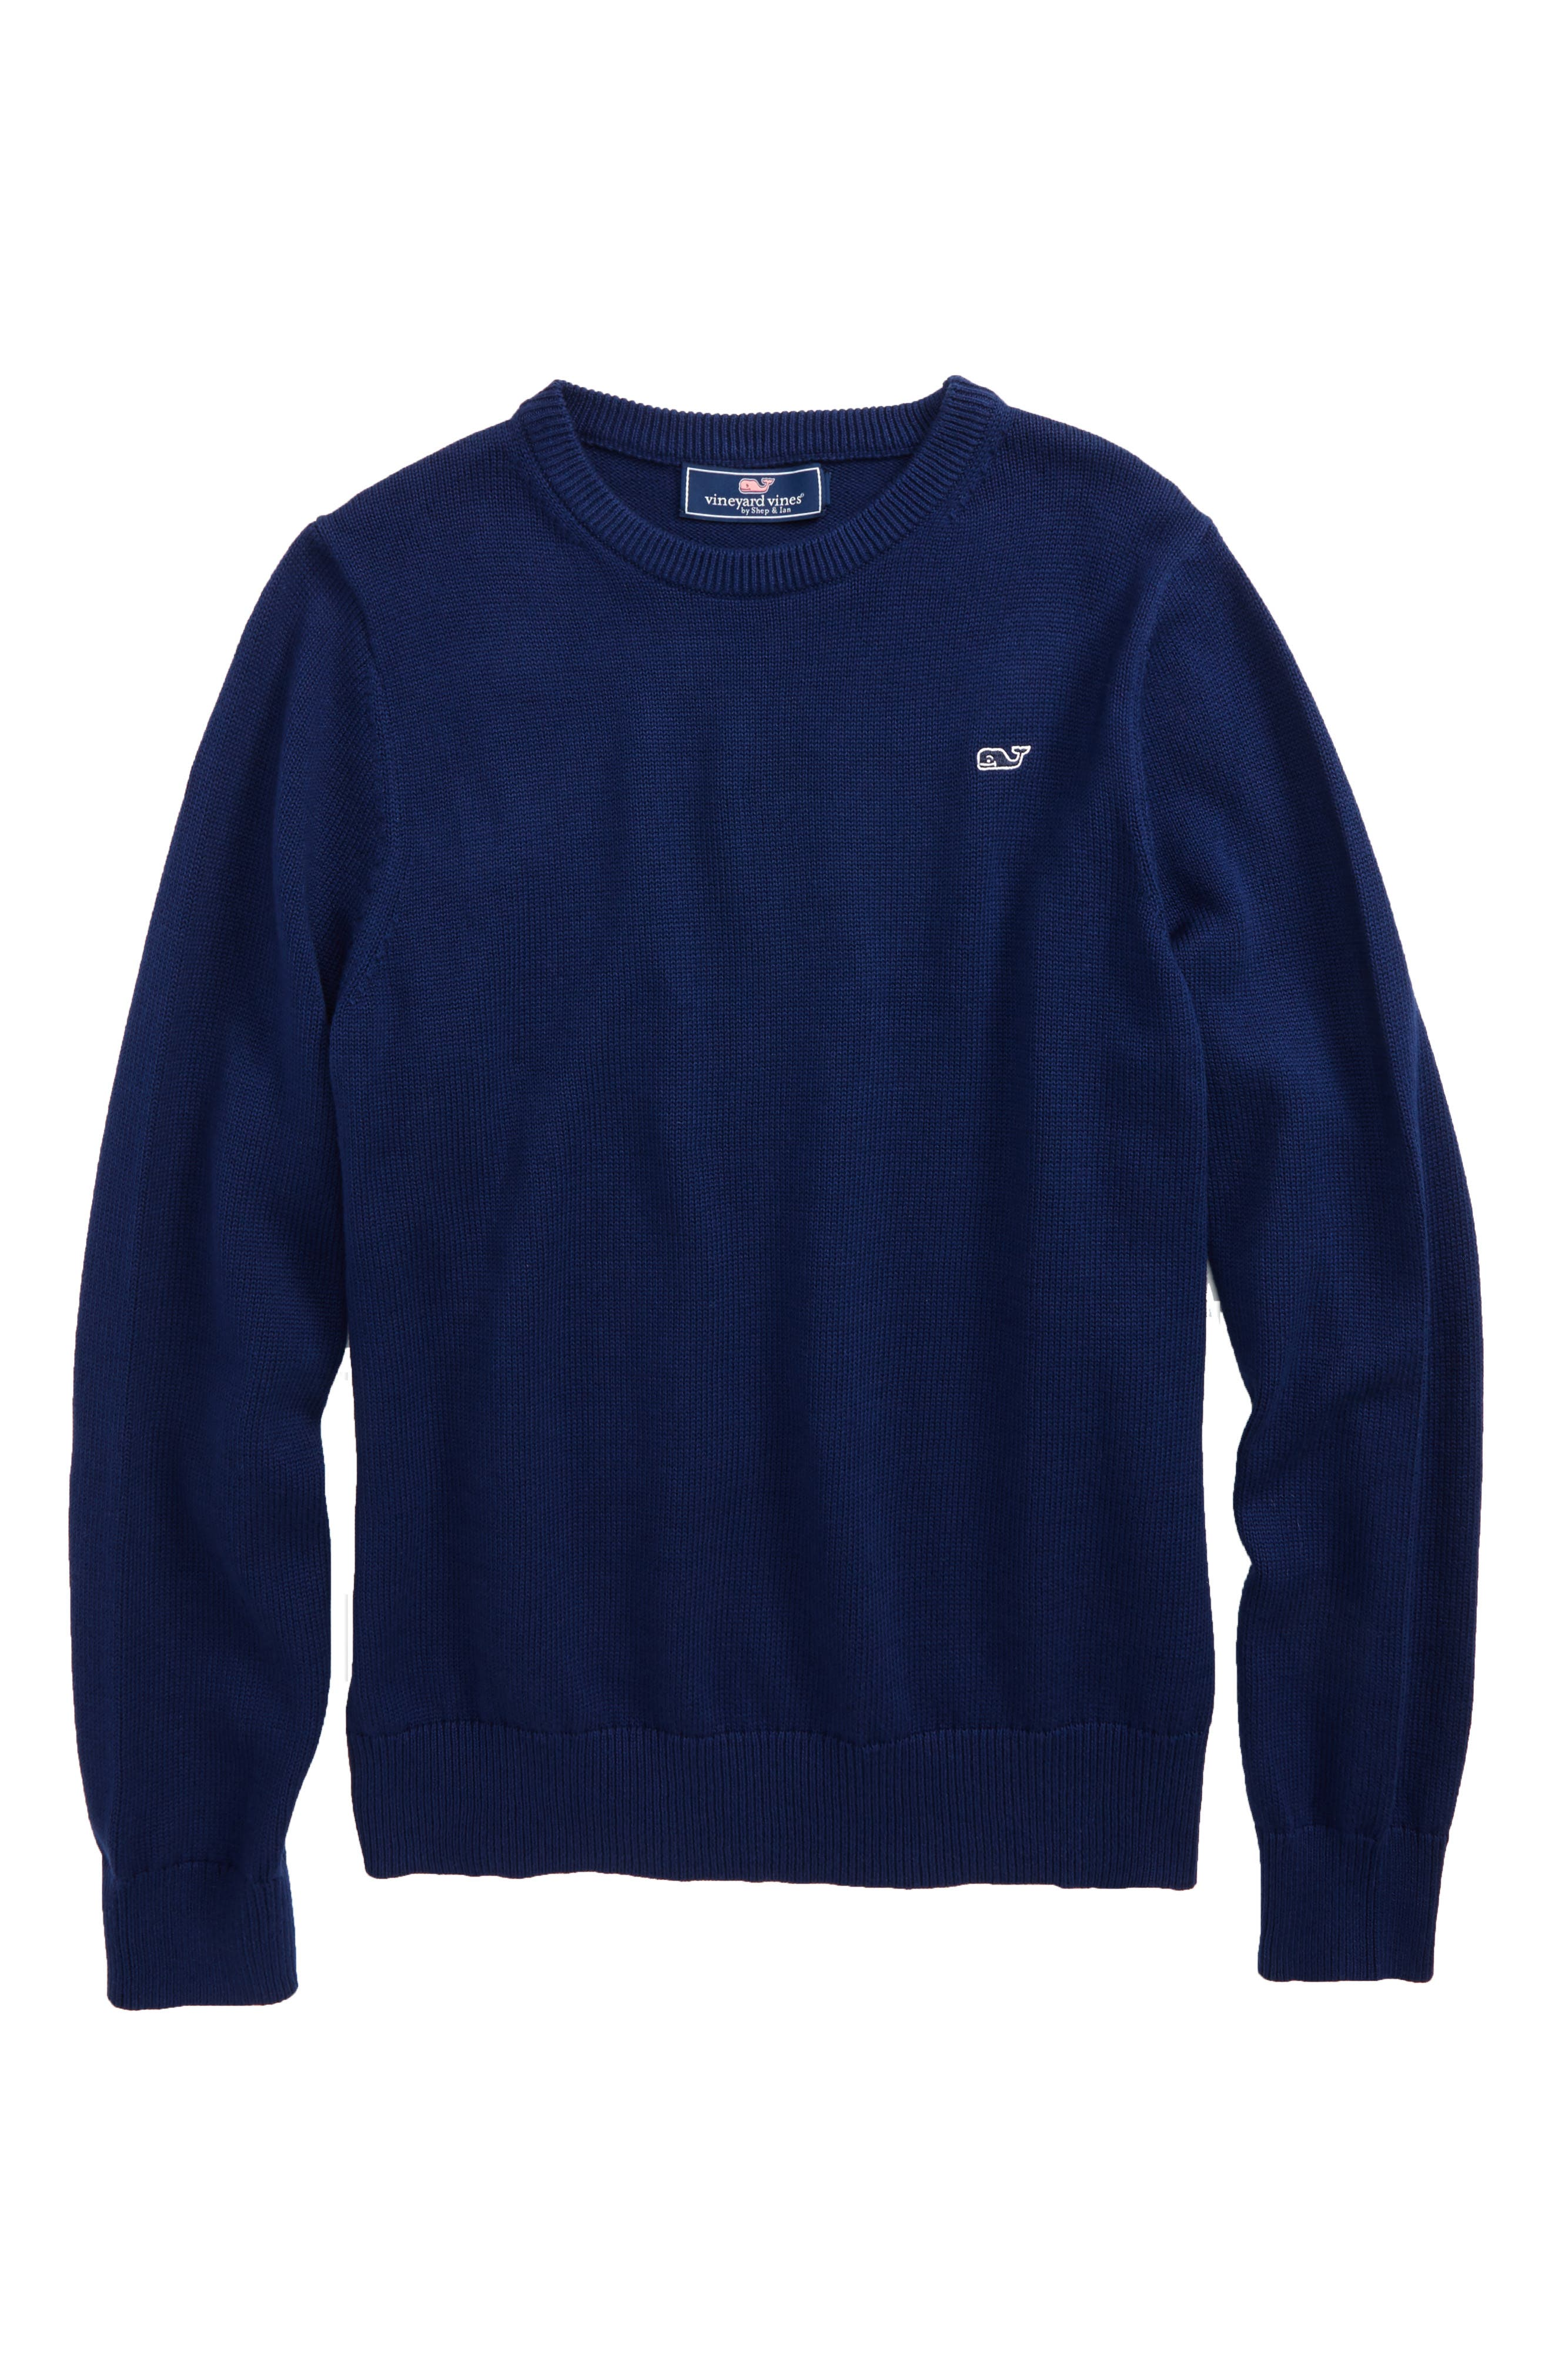 Main Image - vineyard vines Classic Crewneck Sweater (Big Boys)